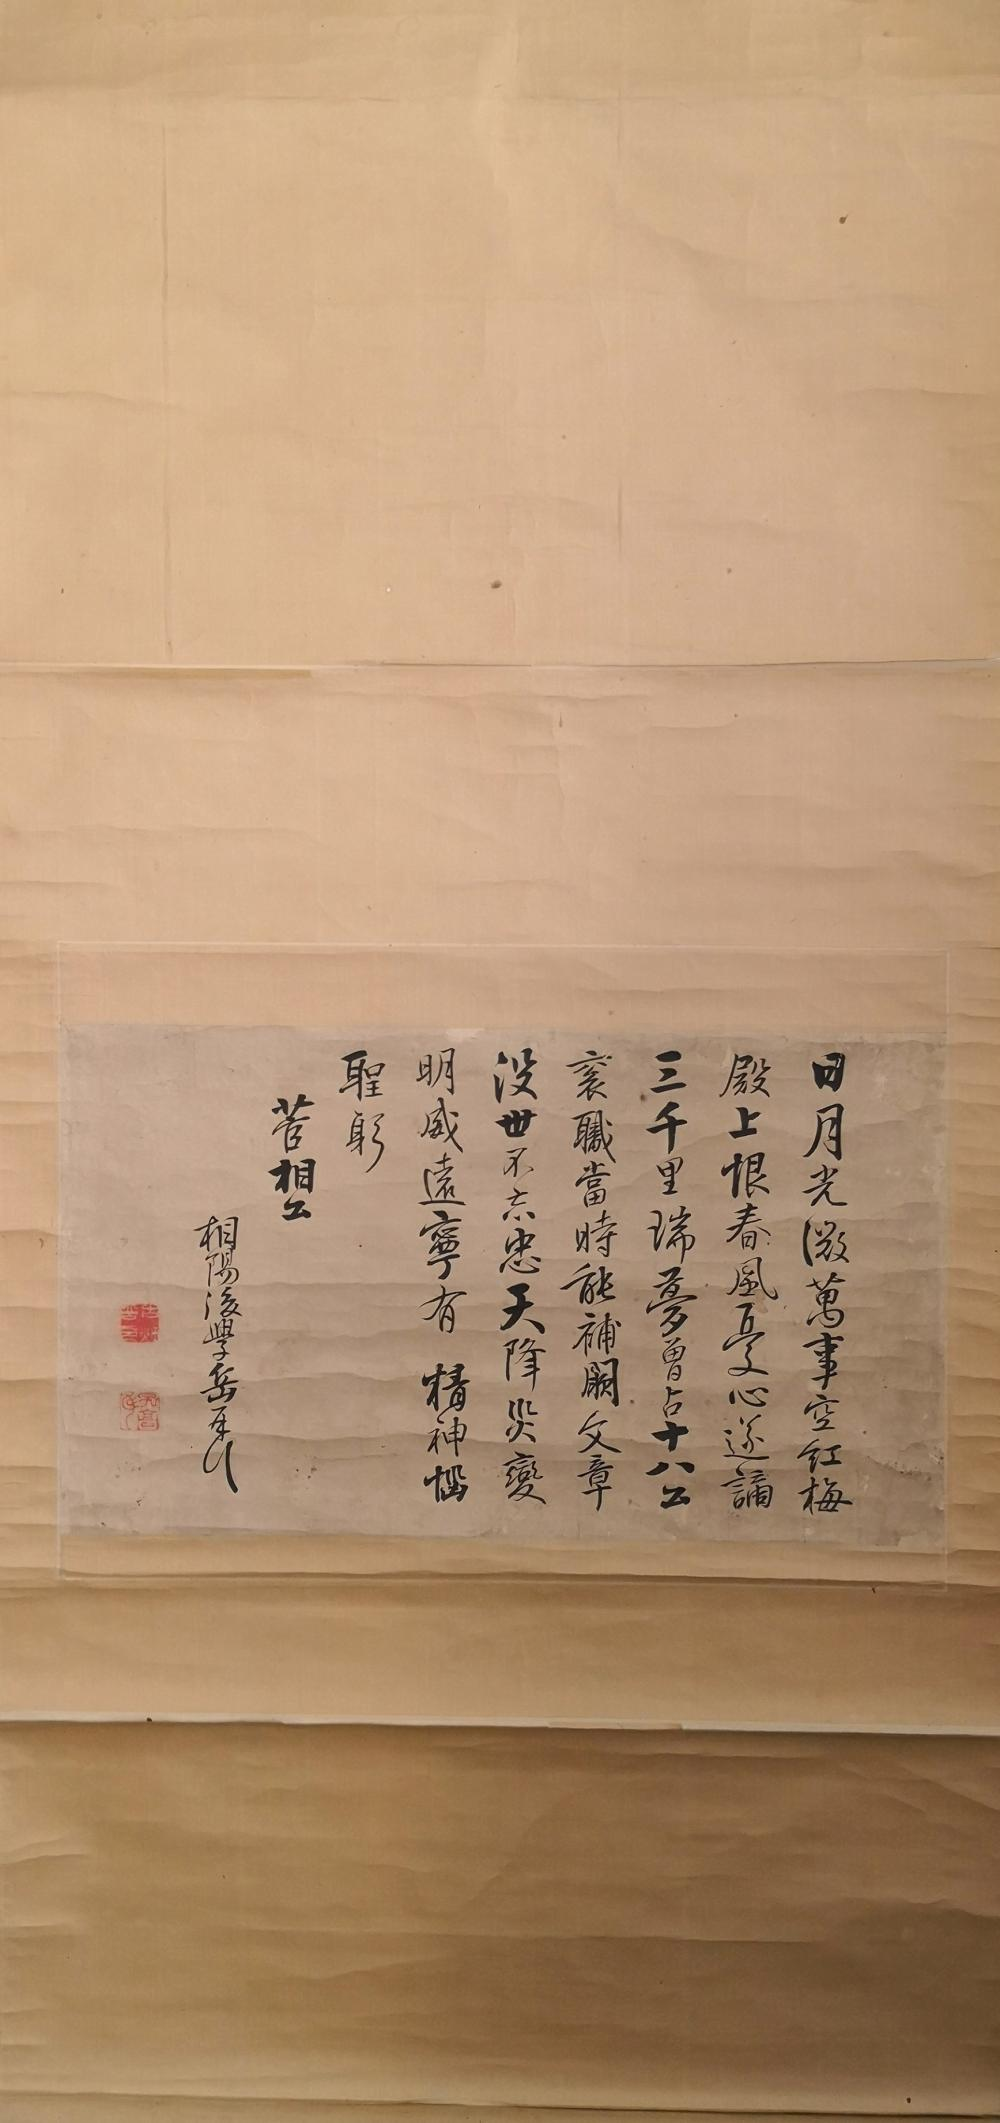 A CHINESE PAINTING BY UNKNOWN